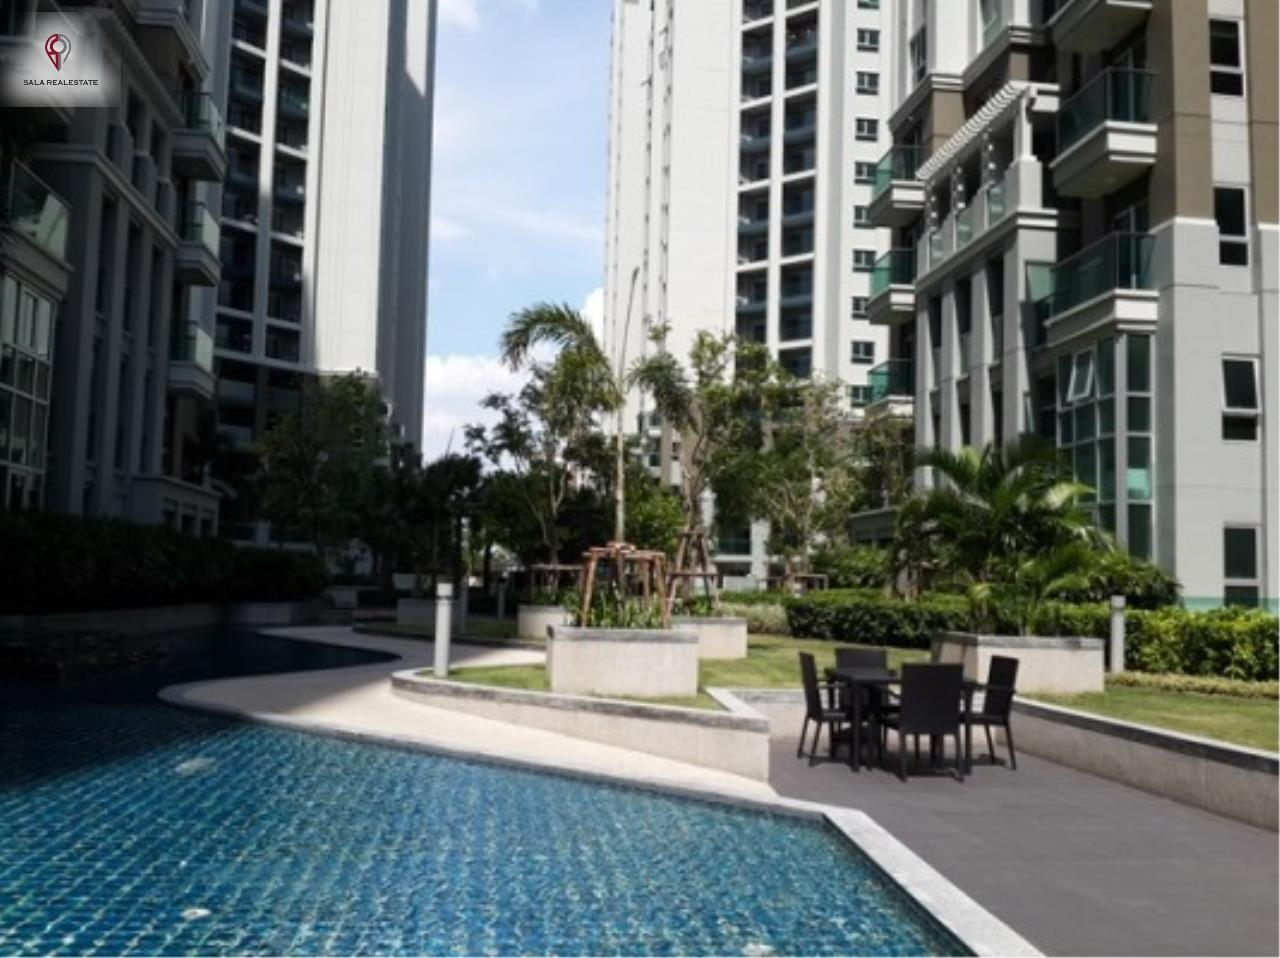 SALA ESTATE Agency's BELLE GRAND RAMA IX - NEAR MRT PHRA RAM 9 10